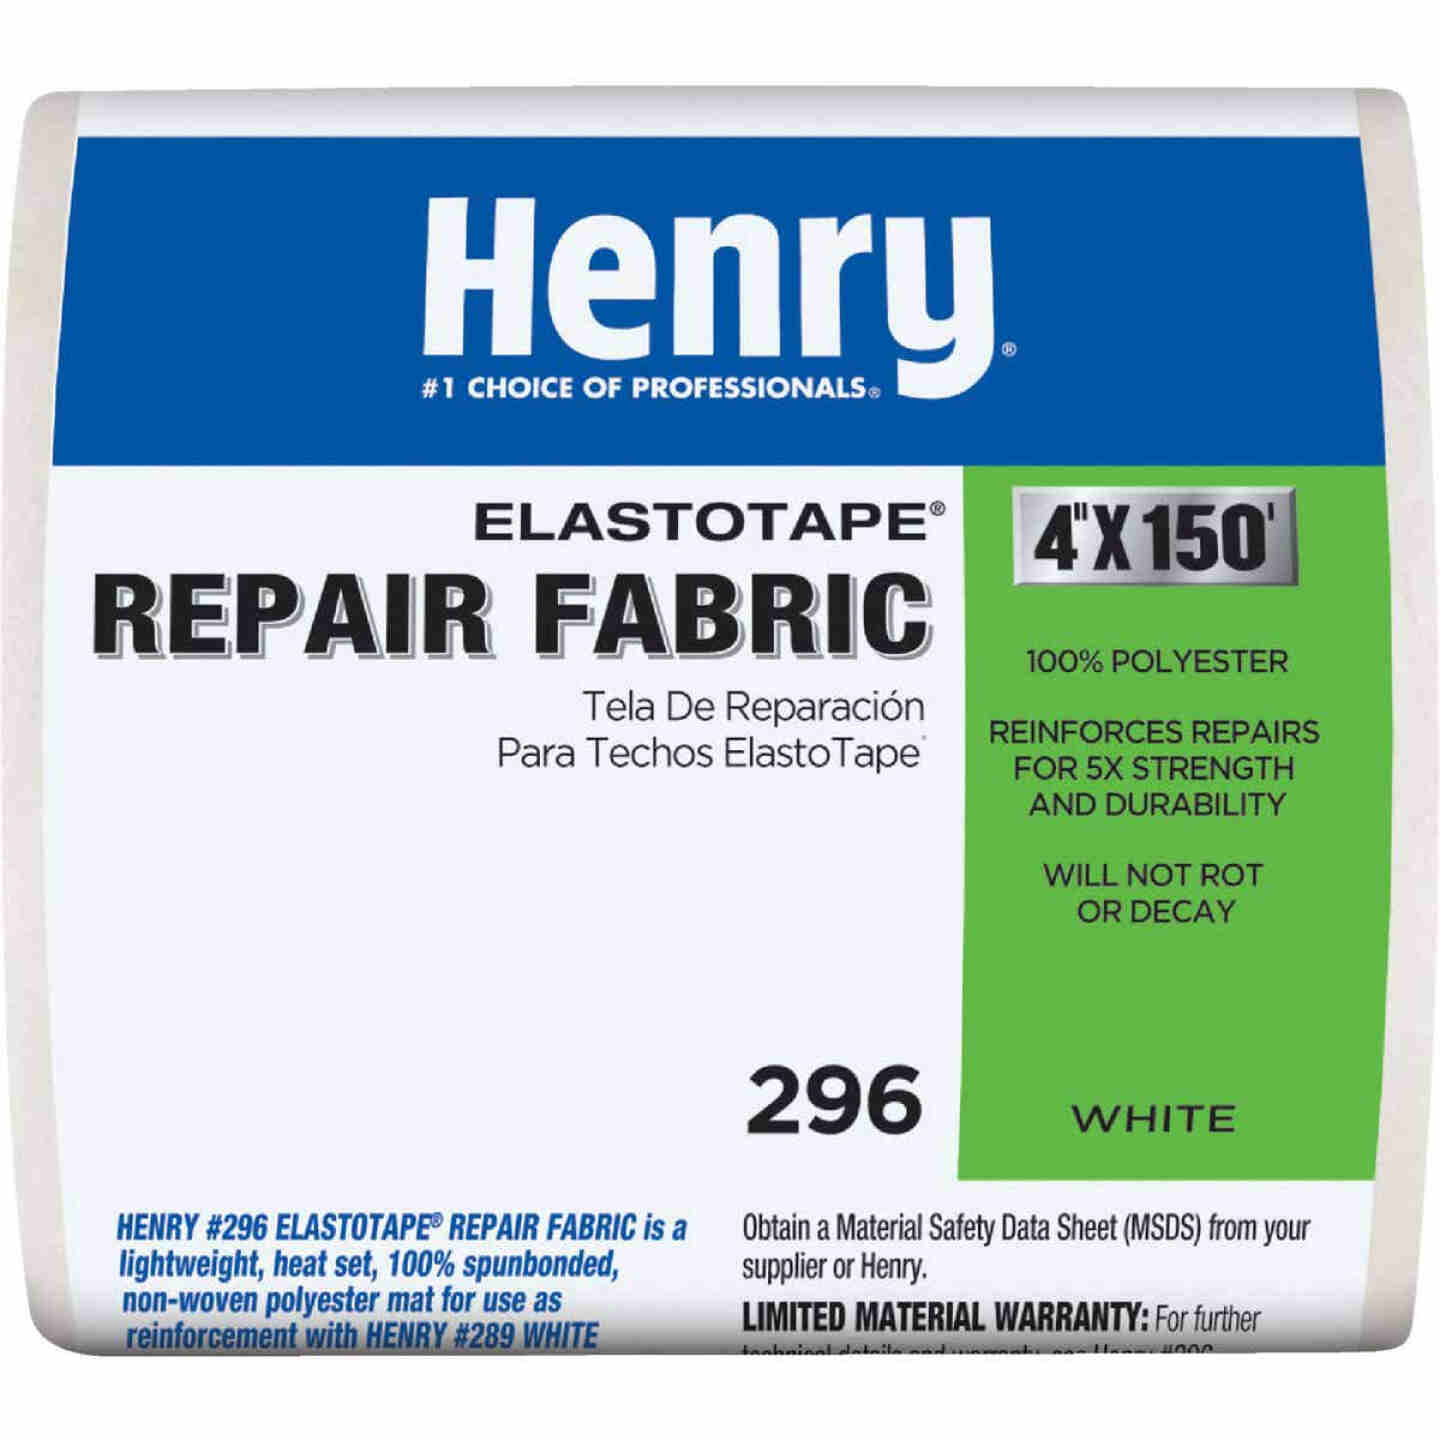 Henry ElastoTape 4 In. x 150 Ft. Reinforcing Fabric Image 1